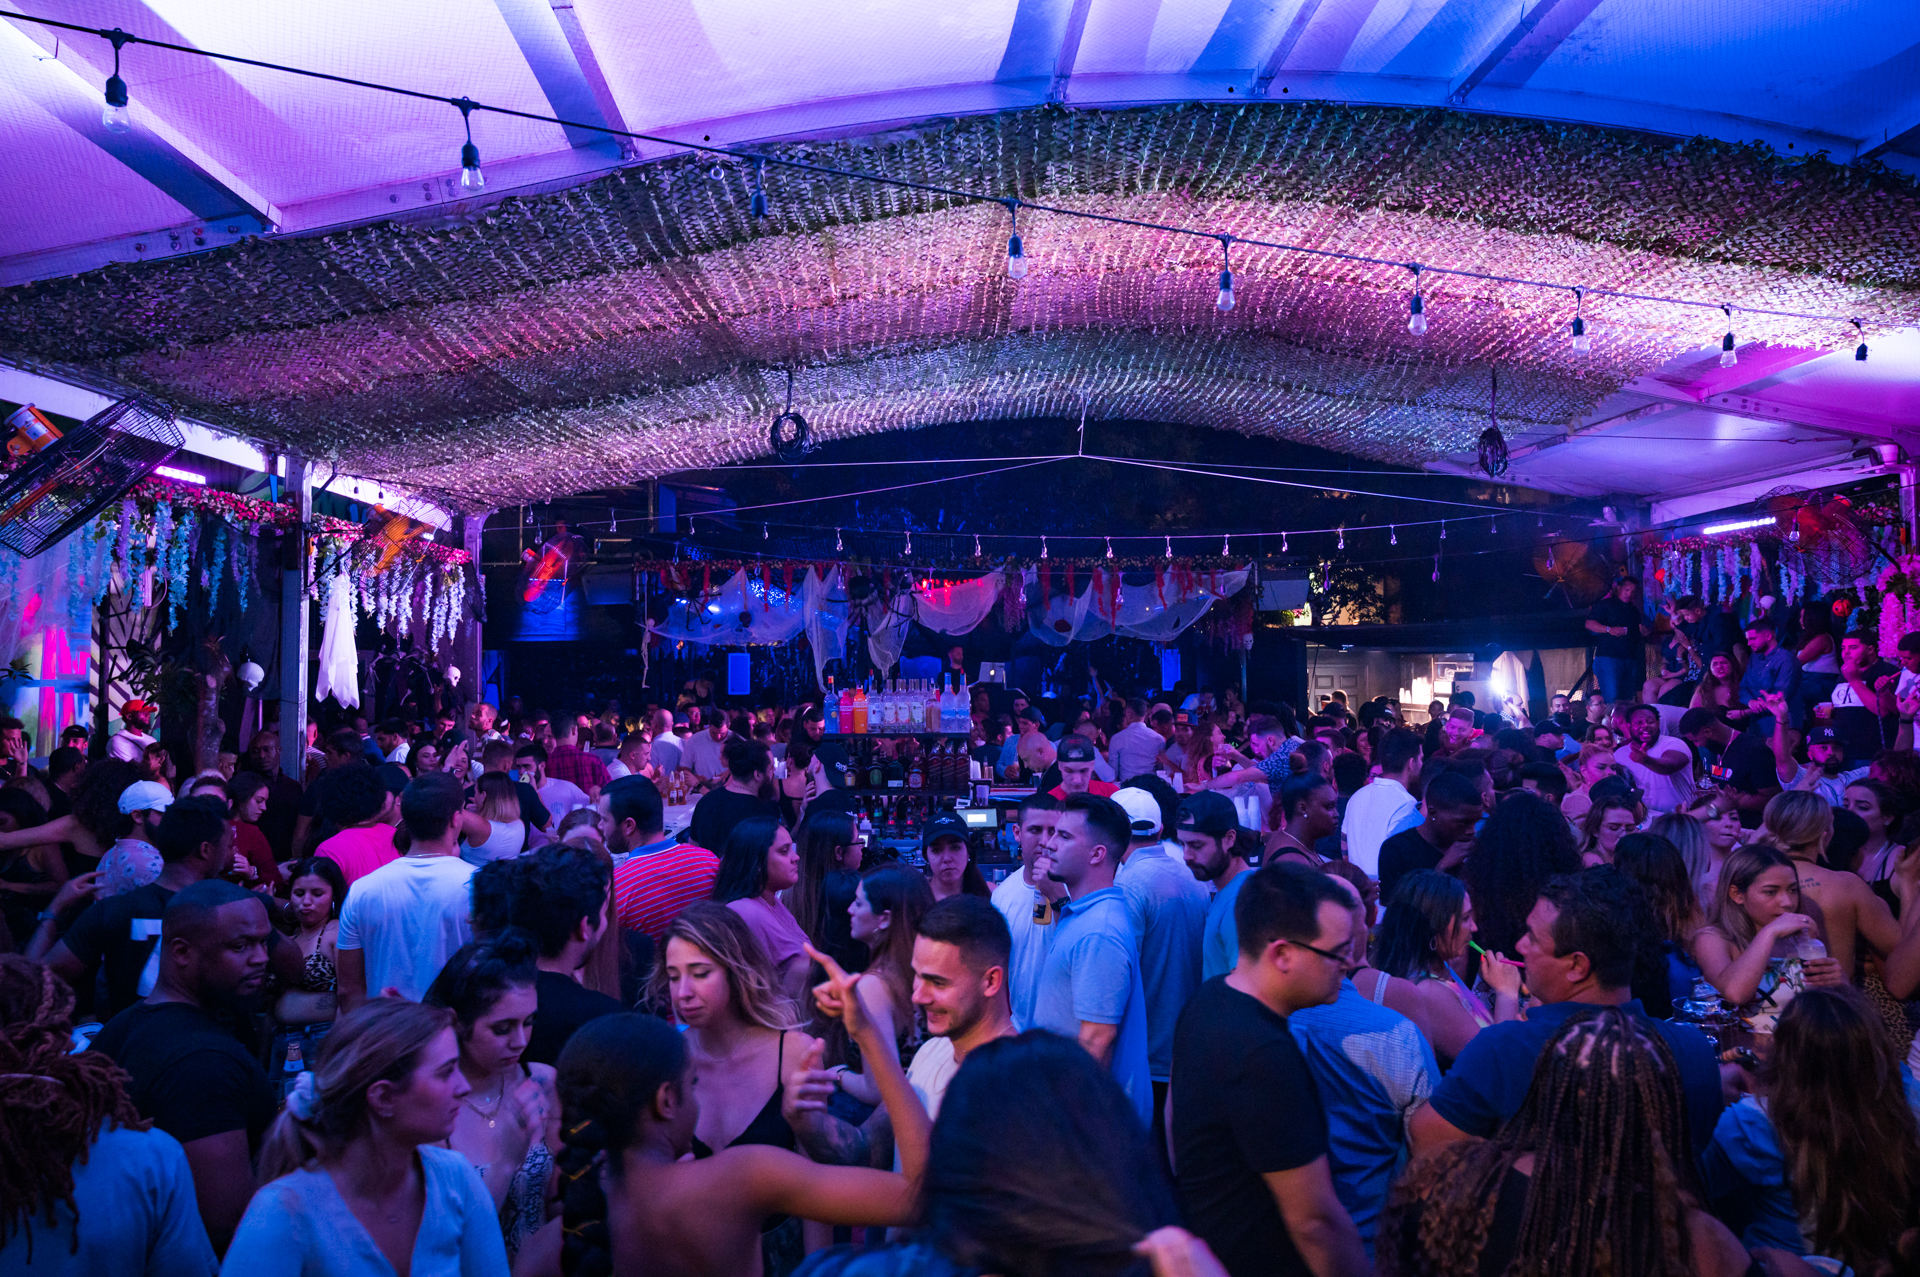 centro miami nightclub